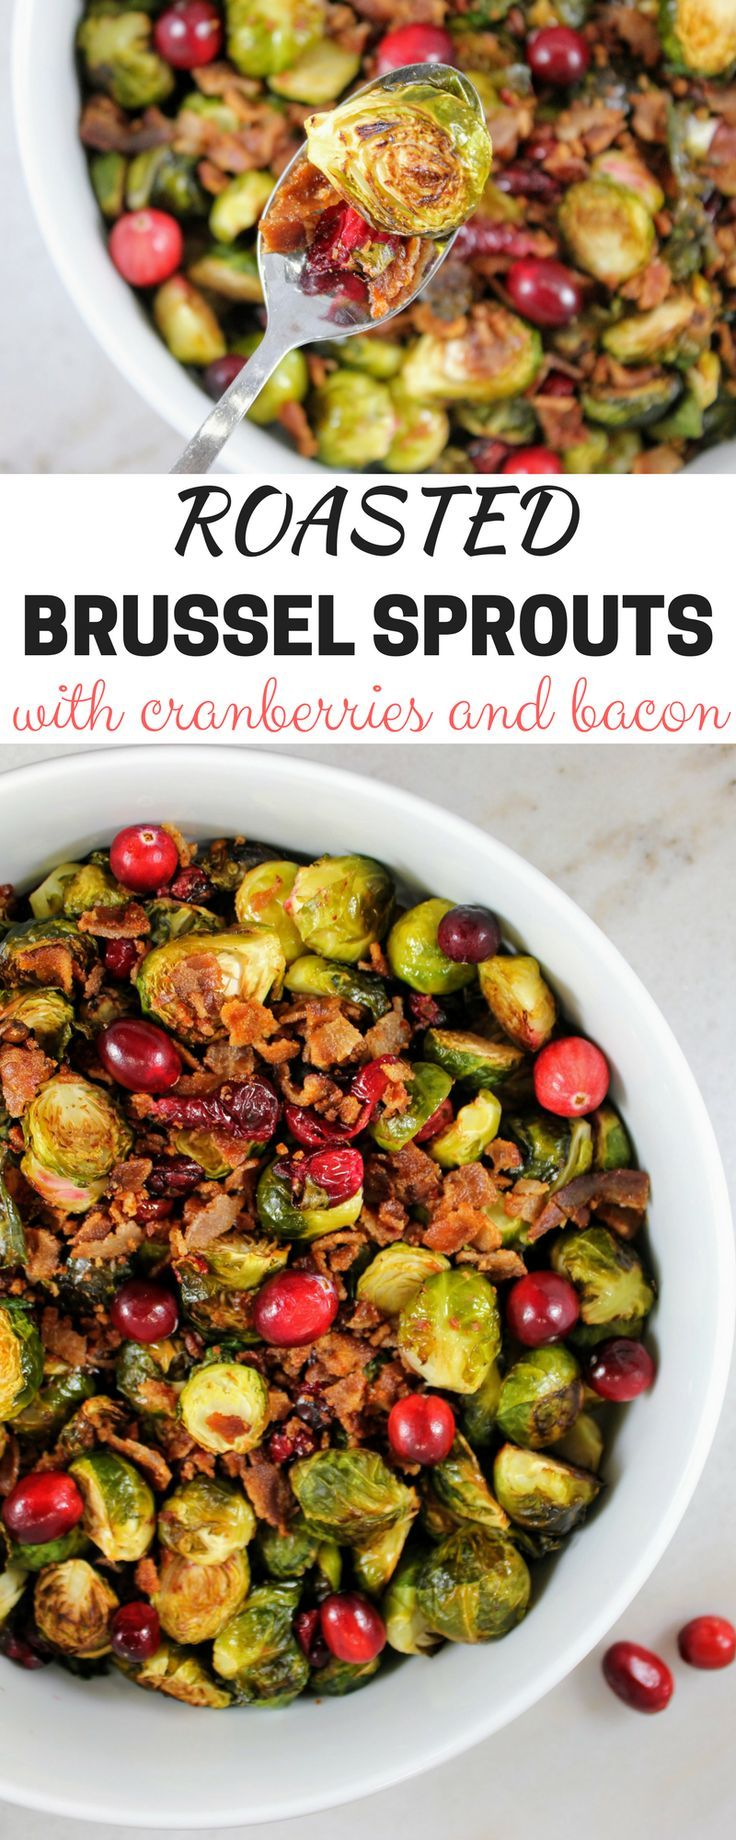 roasted brussel sprouts with cranberries bacon perfect christmas side dish food pinterest christmas side dishes christmas side and sprouts - Christmas Side Dishes Pinterest